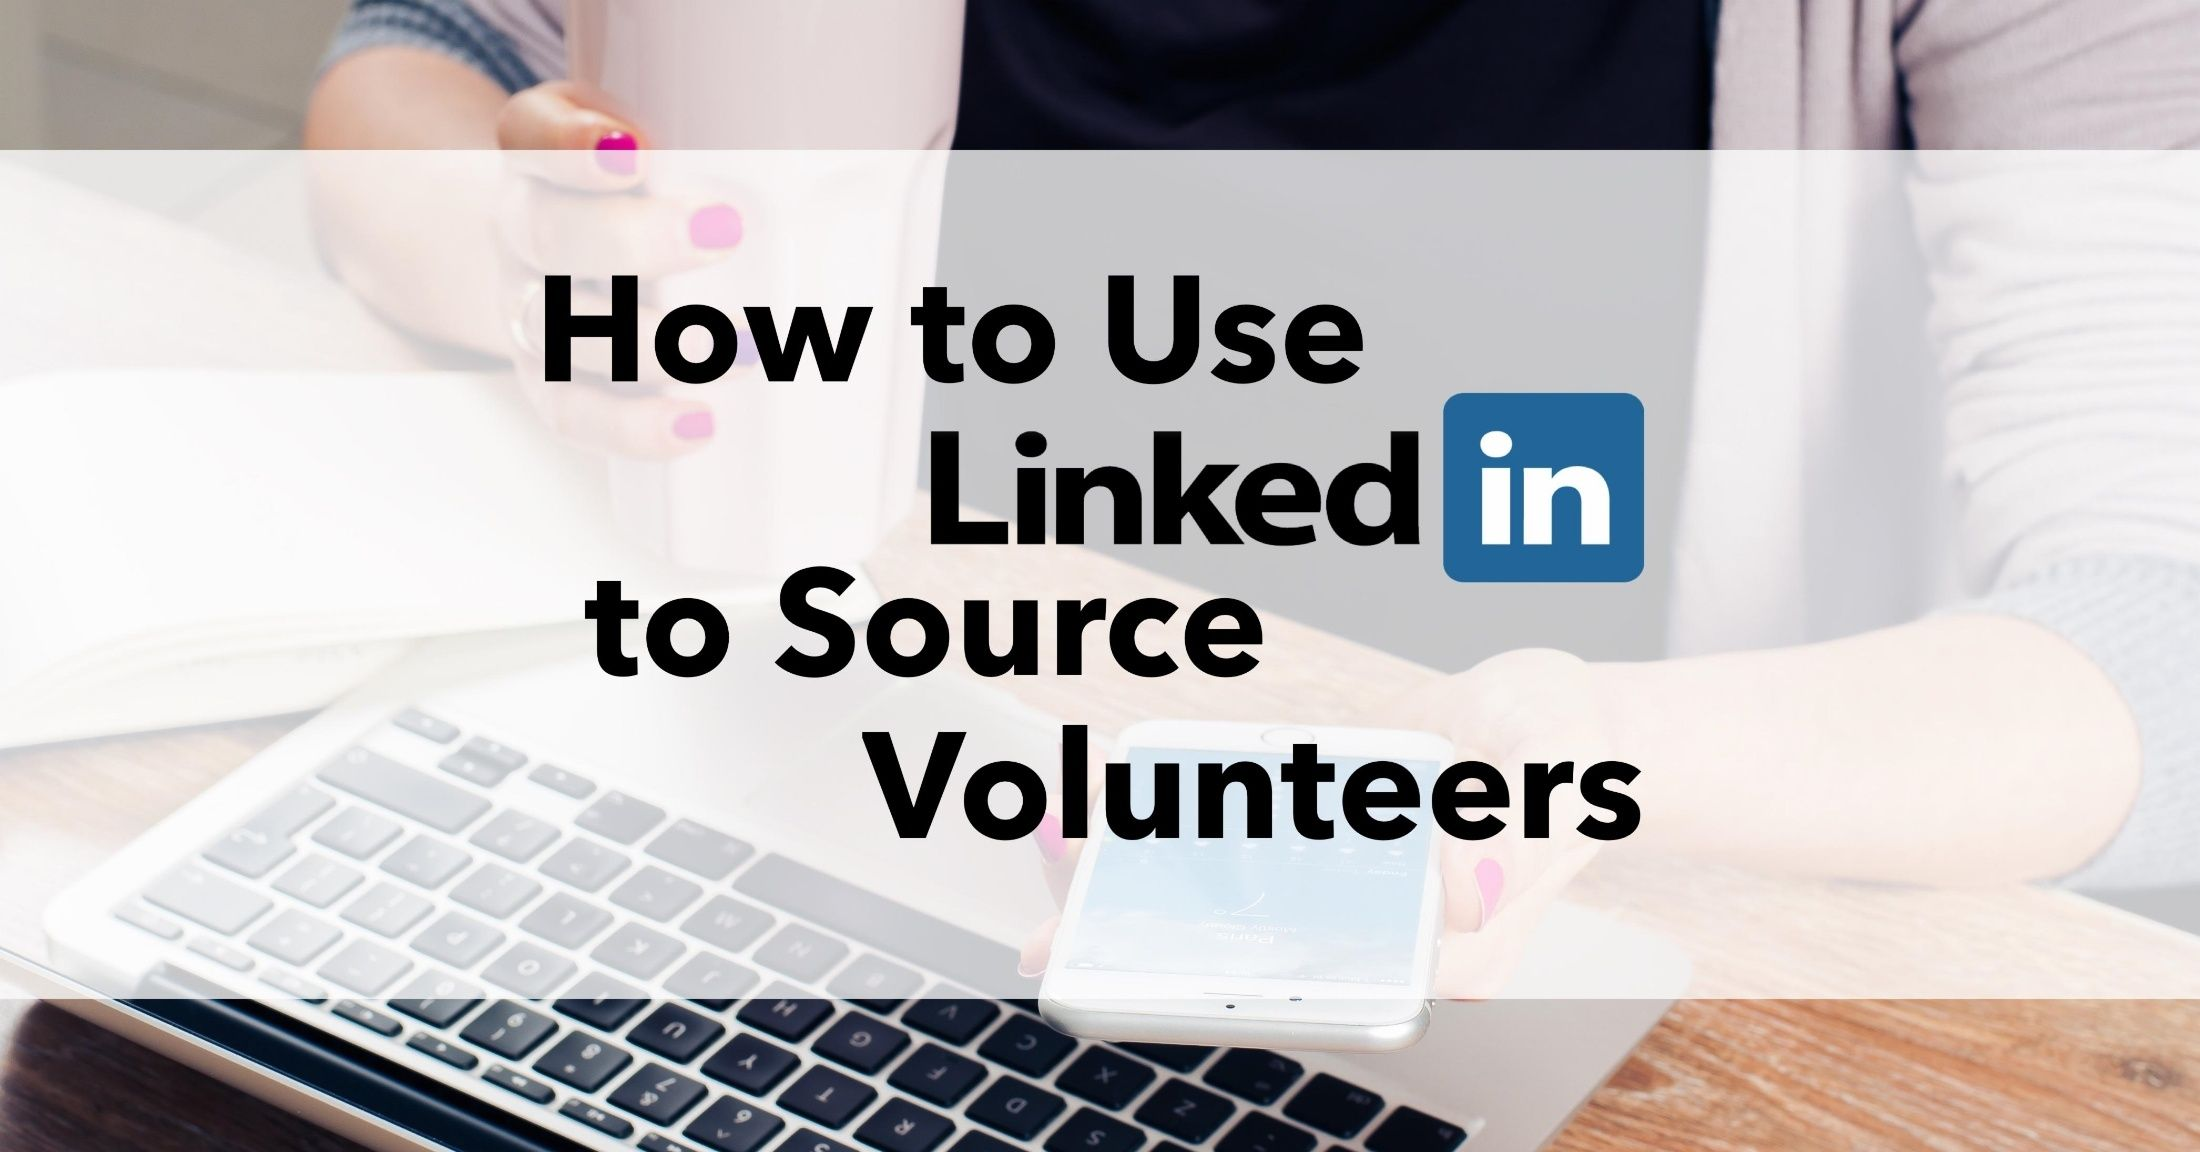 When it comes to recruiting volunteers through social